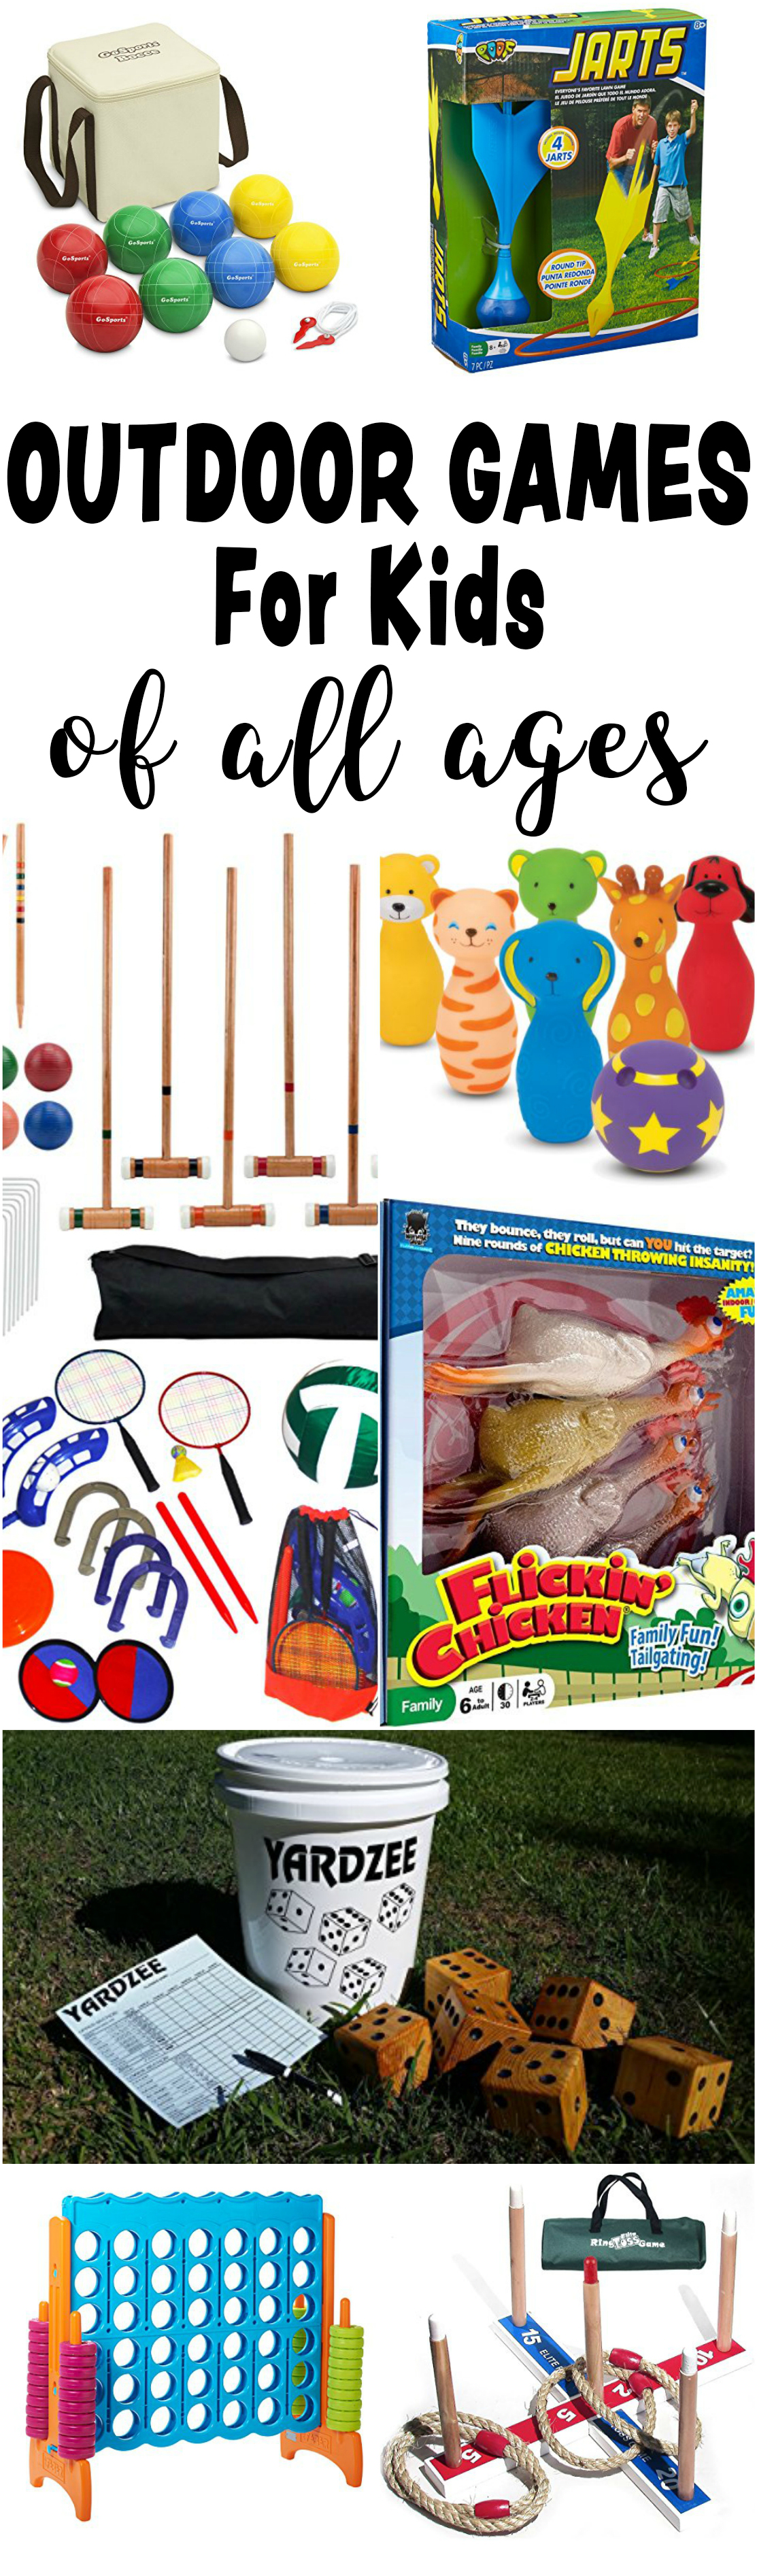 Fun Outdoor Games For kids Of All Ages